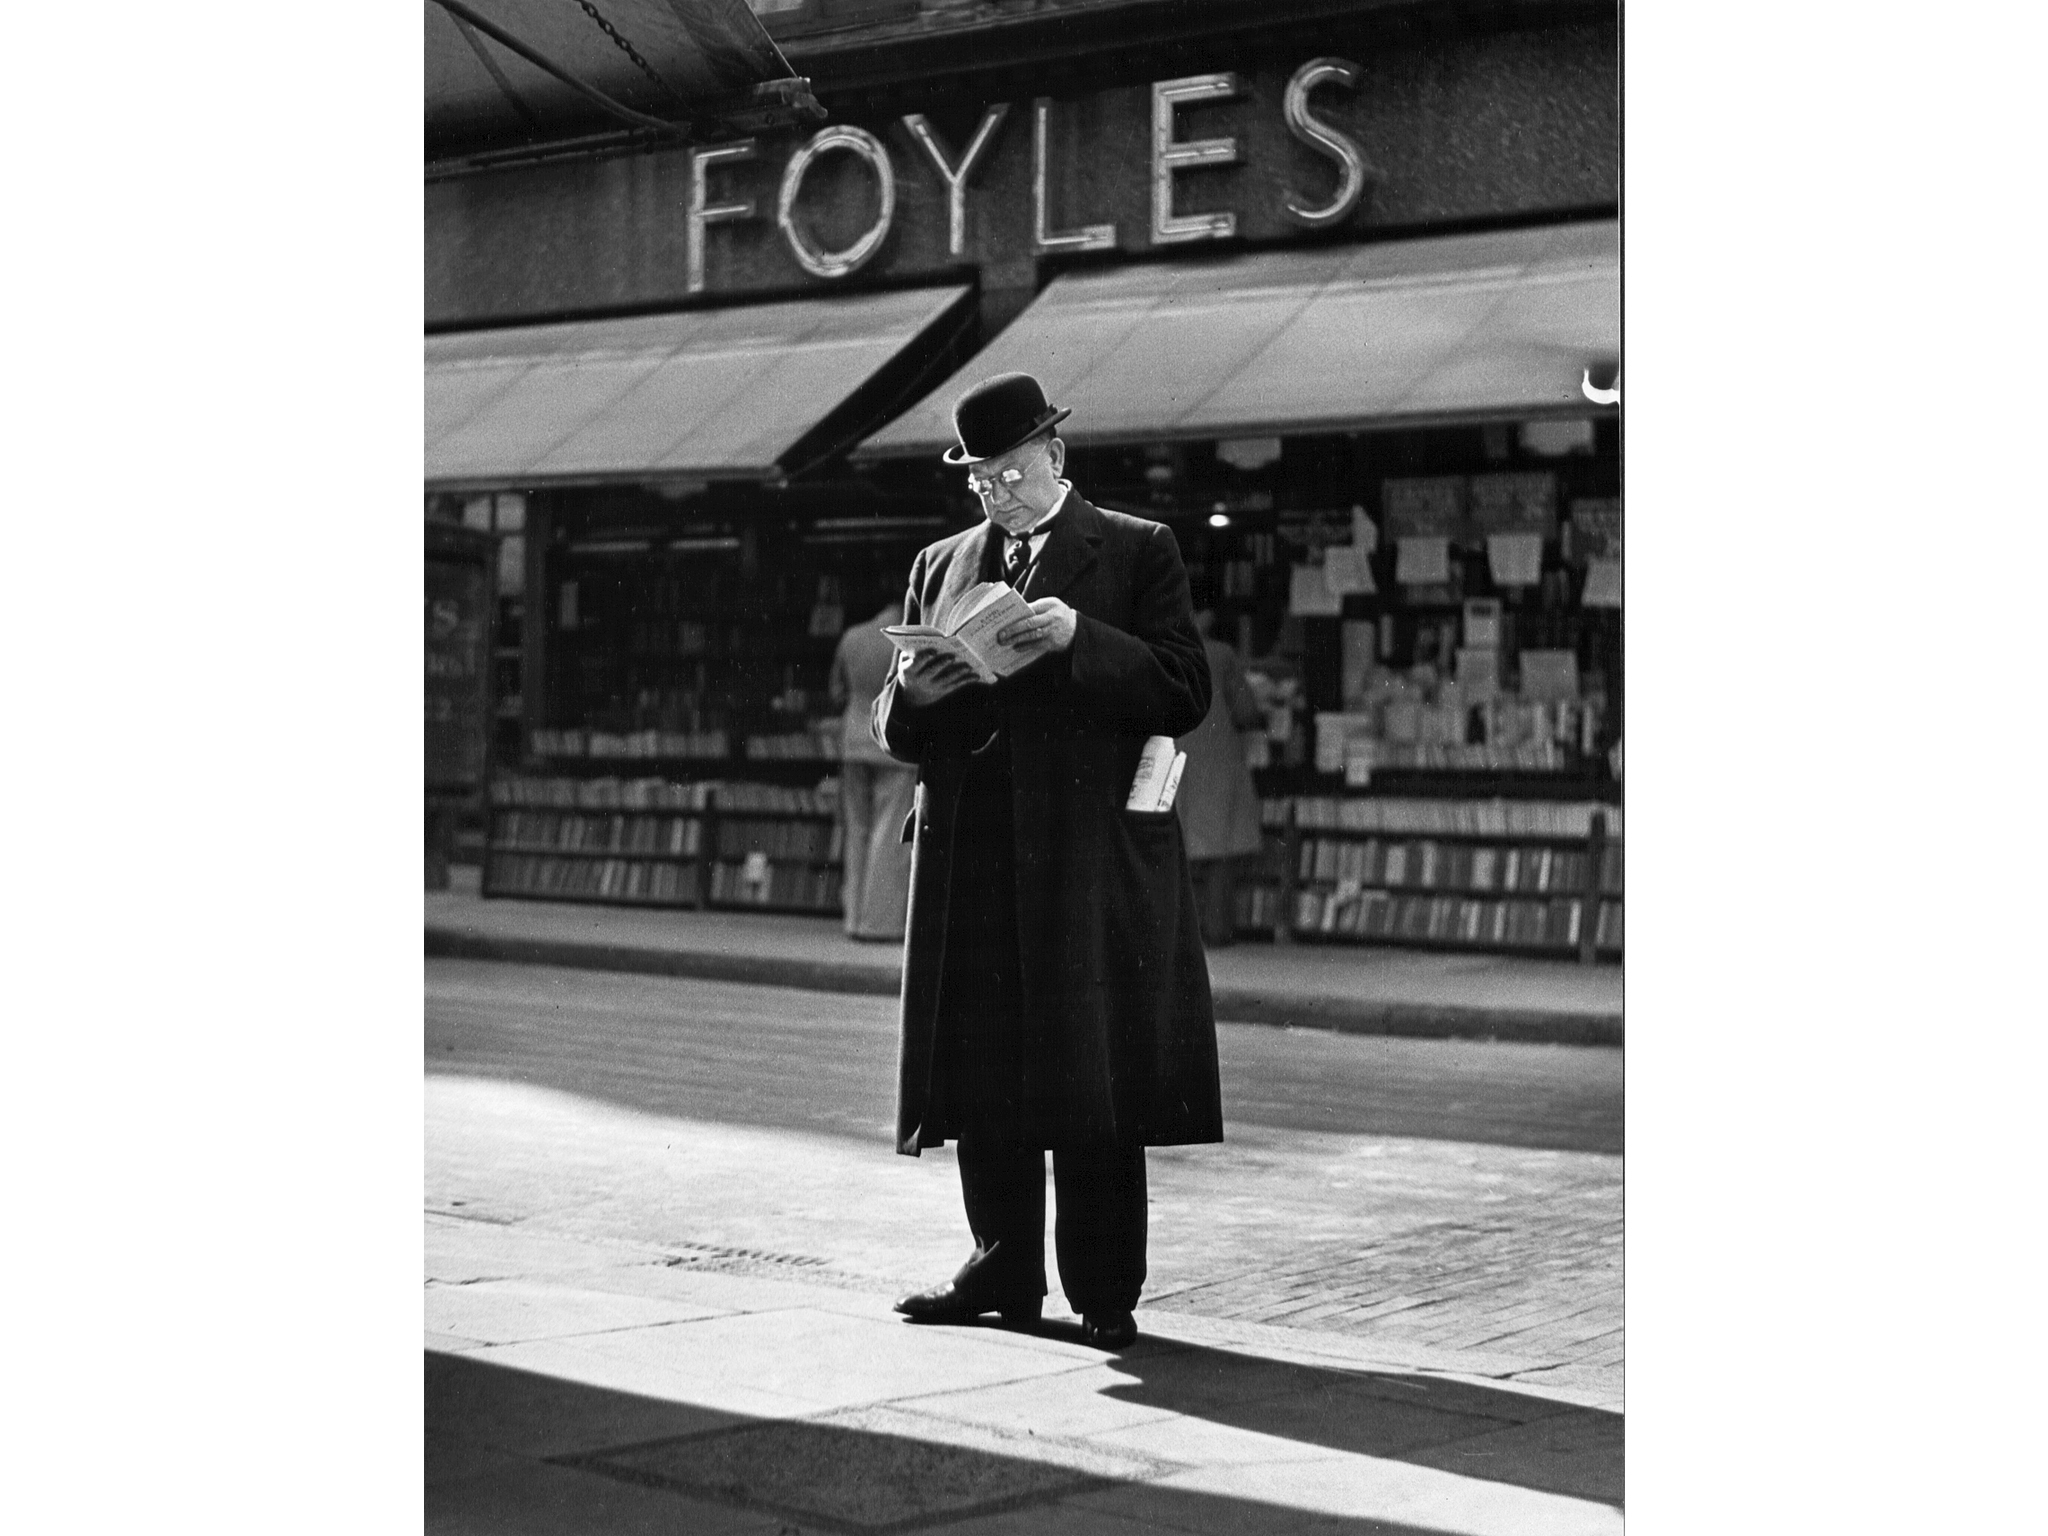 Best london photos wolfgang suschitzky foyles charing cross road london